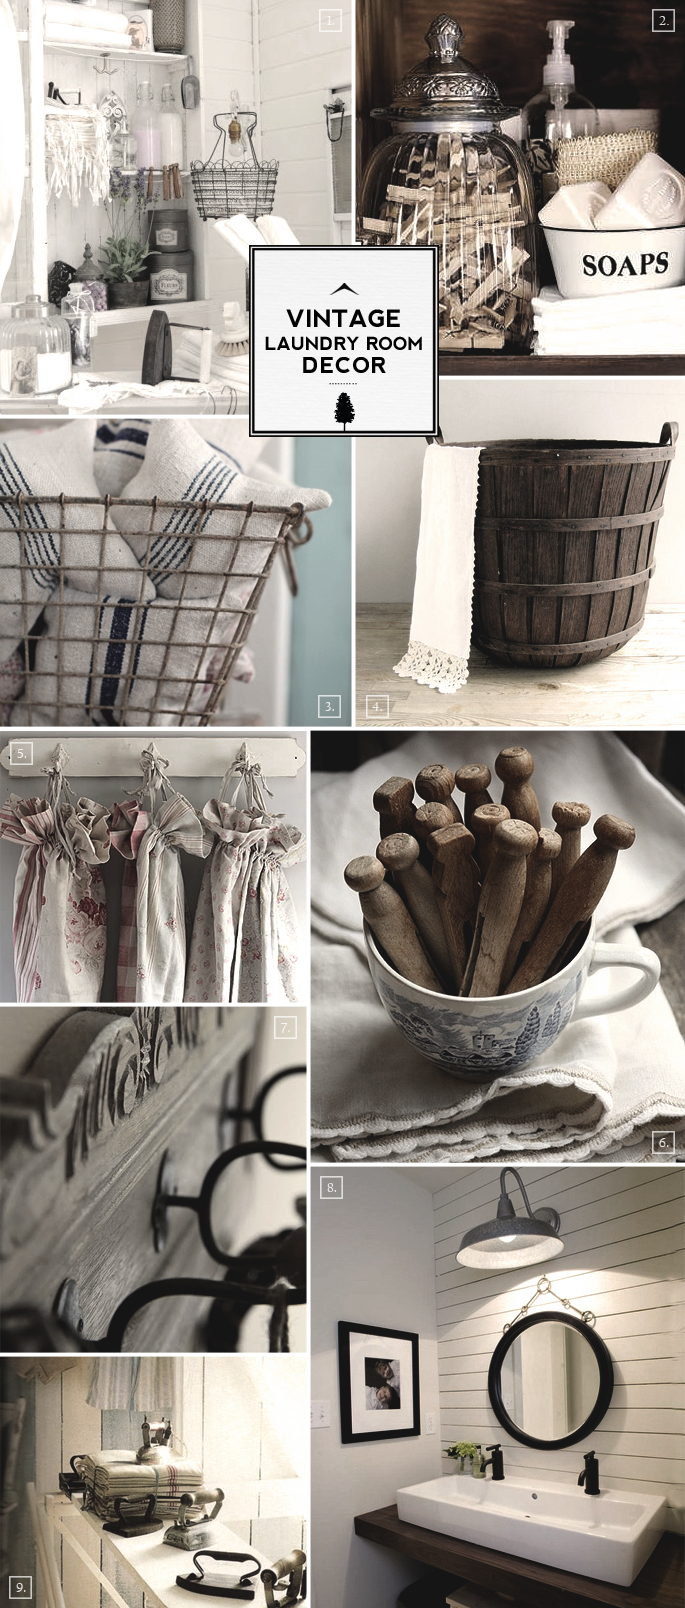 Style Guide: Vintage Laundry Room Decor Ideas